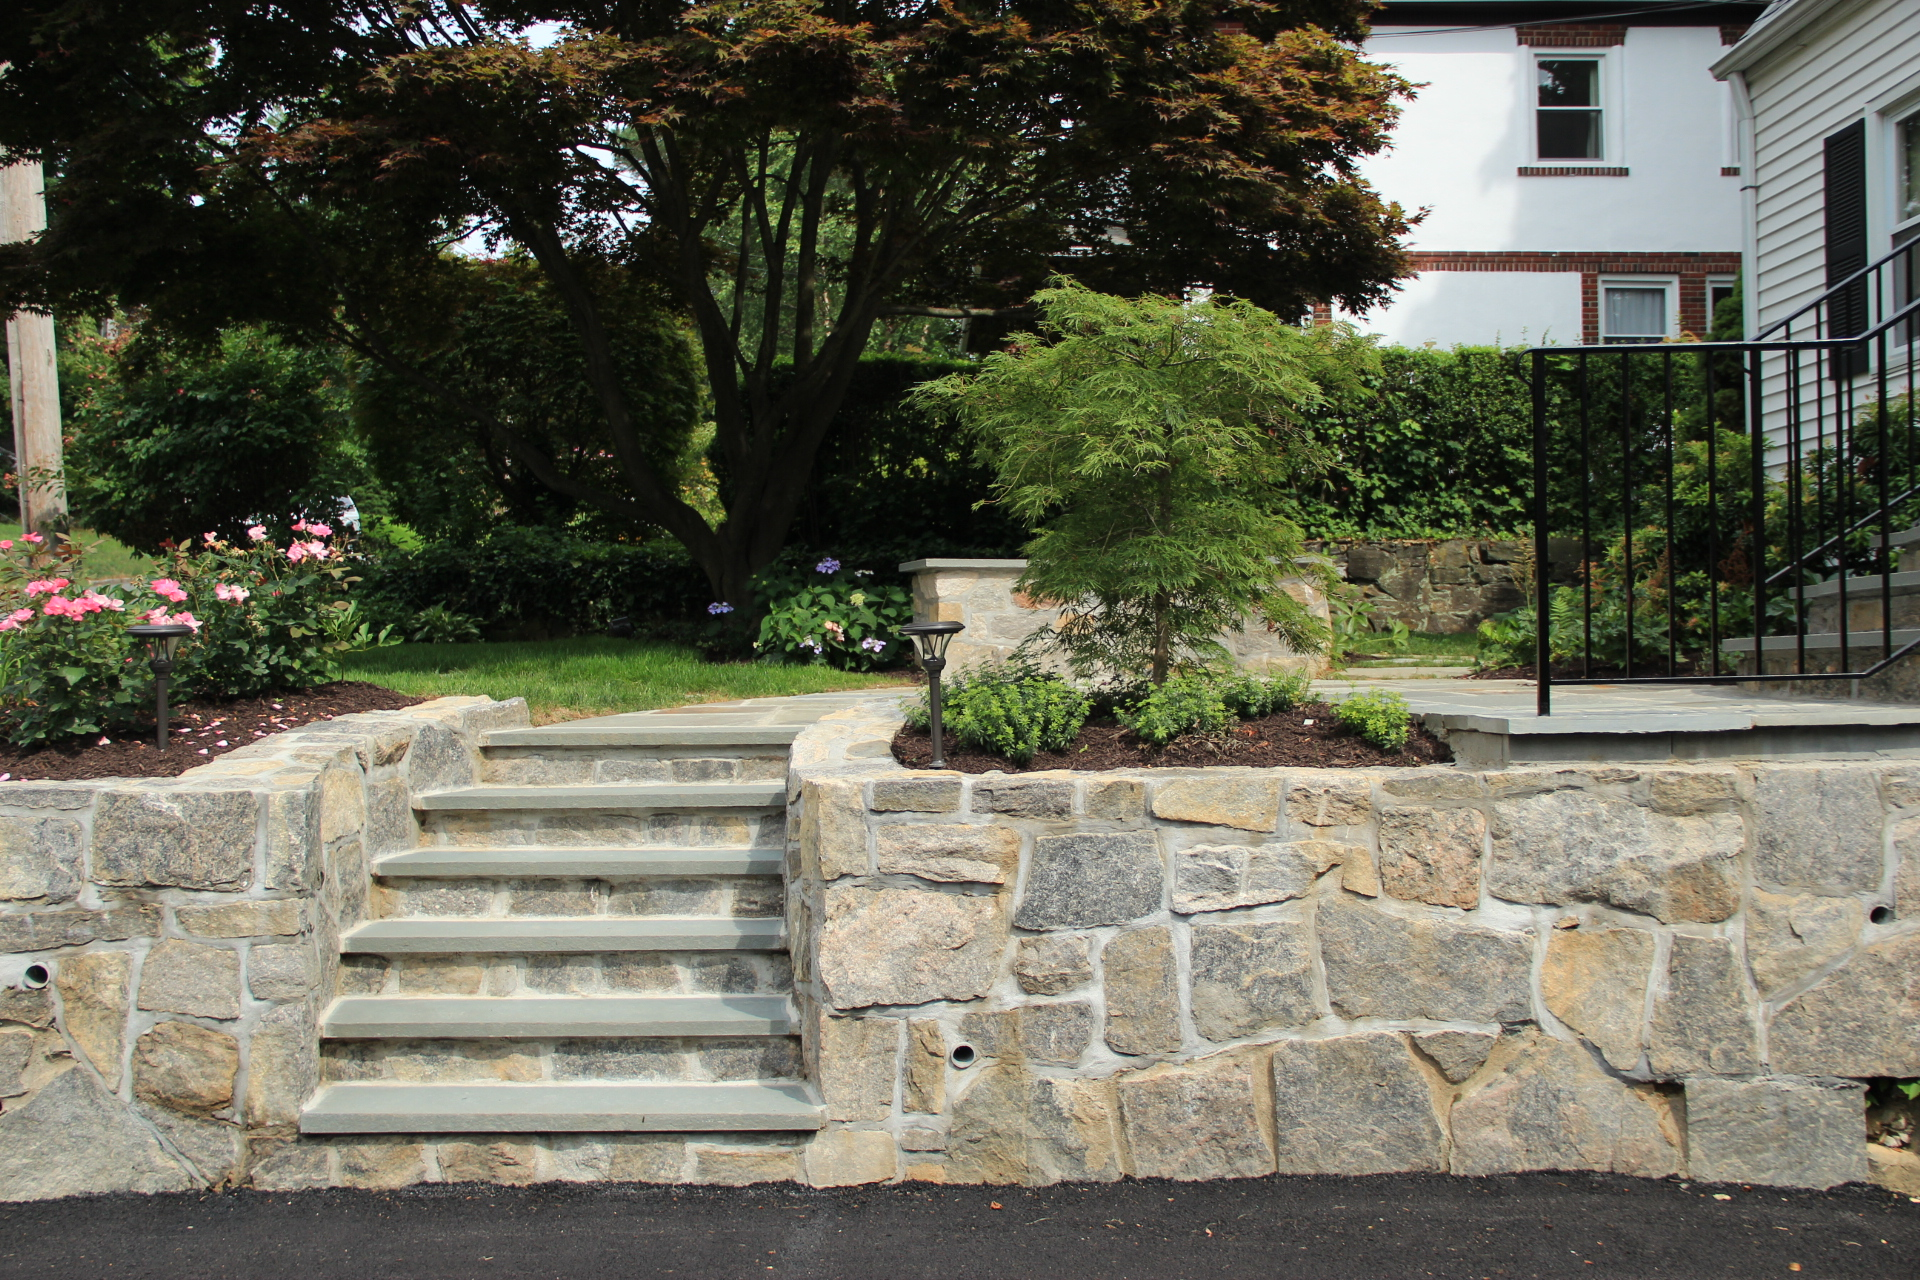 How to Find the Best Landscape Construction Companies in Croton, NY